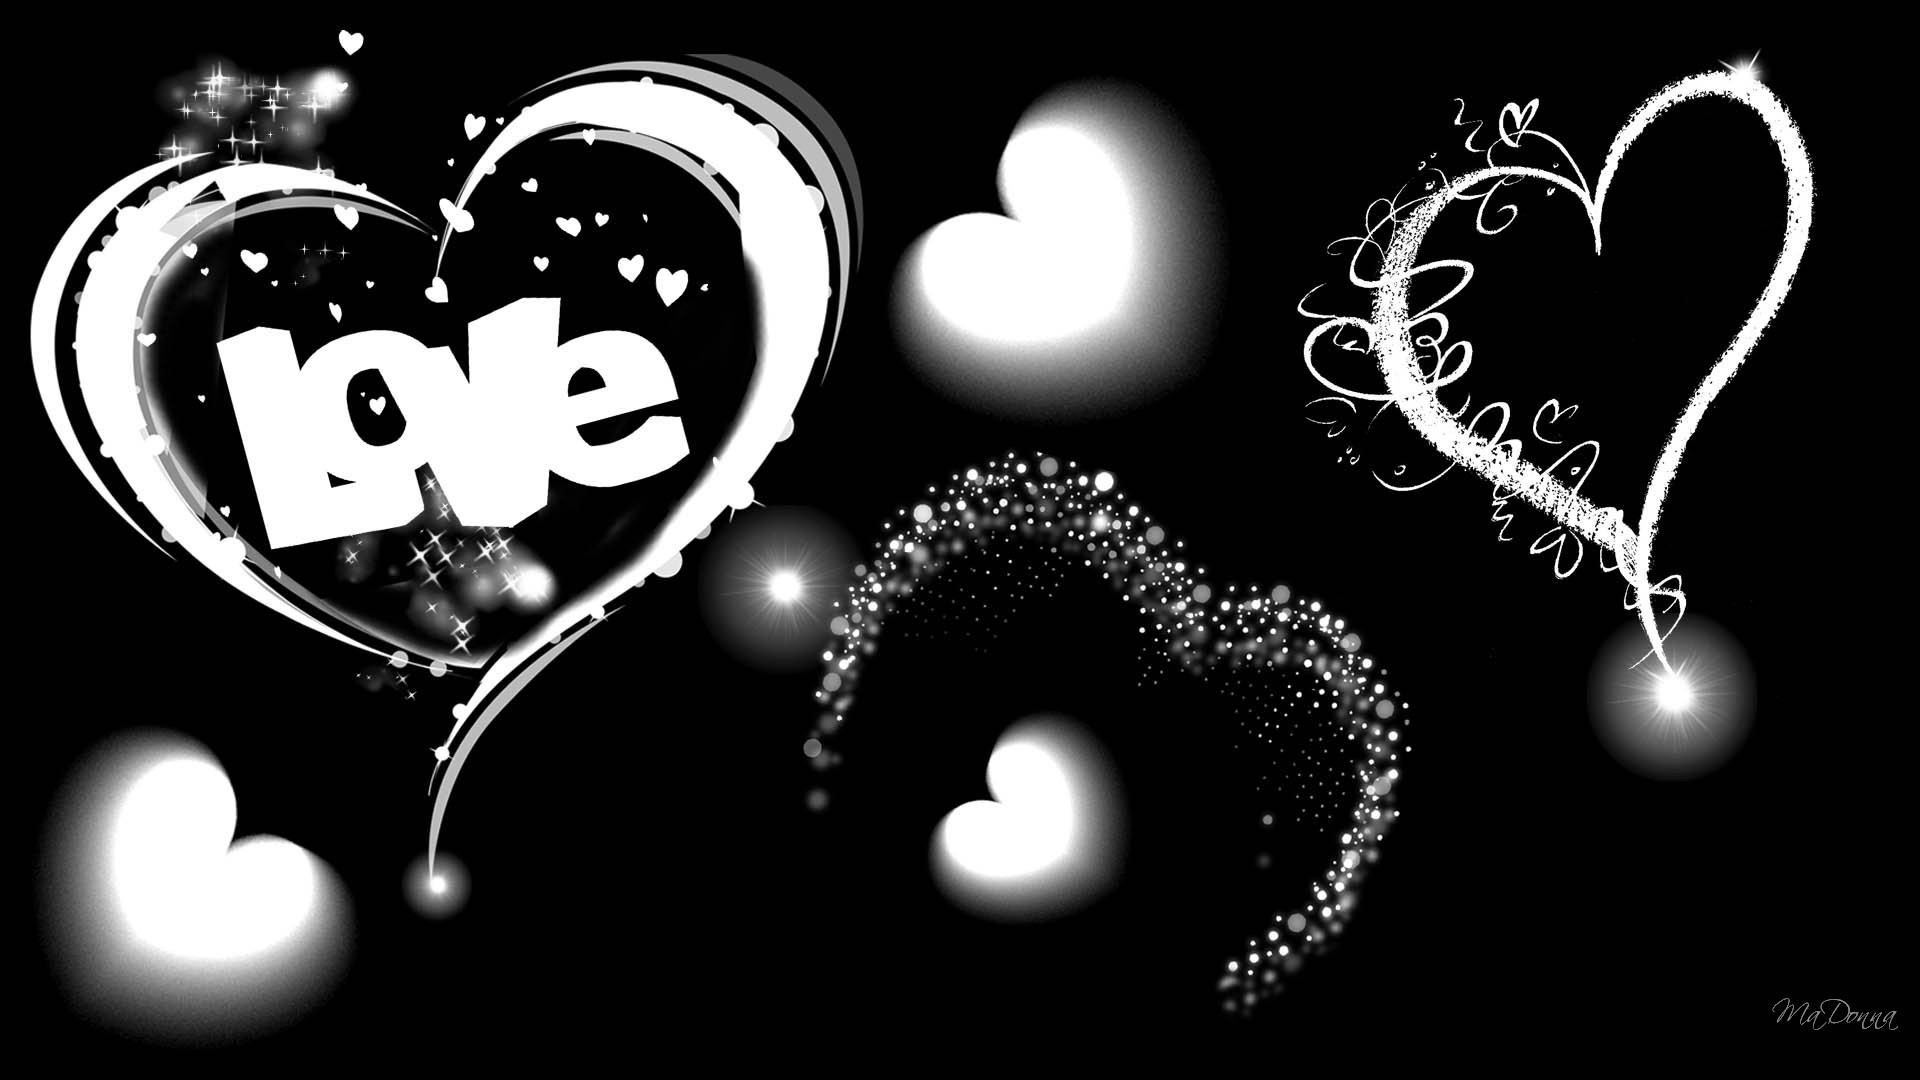 Love Heart Black Wallpaper : Black And White Heart Background - WallpaperSafari